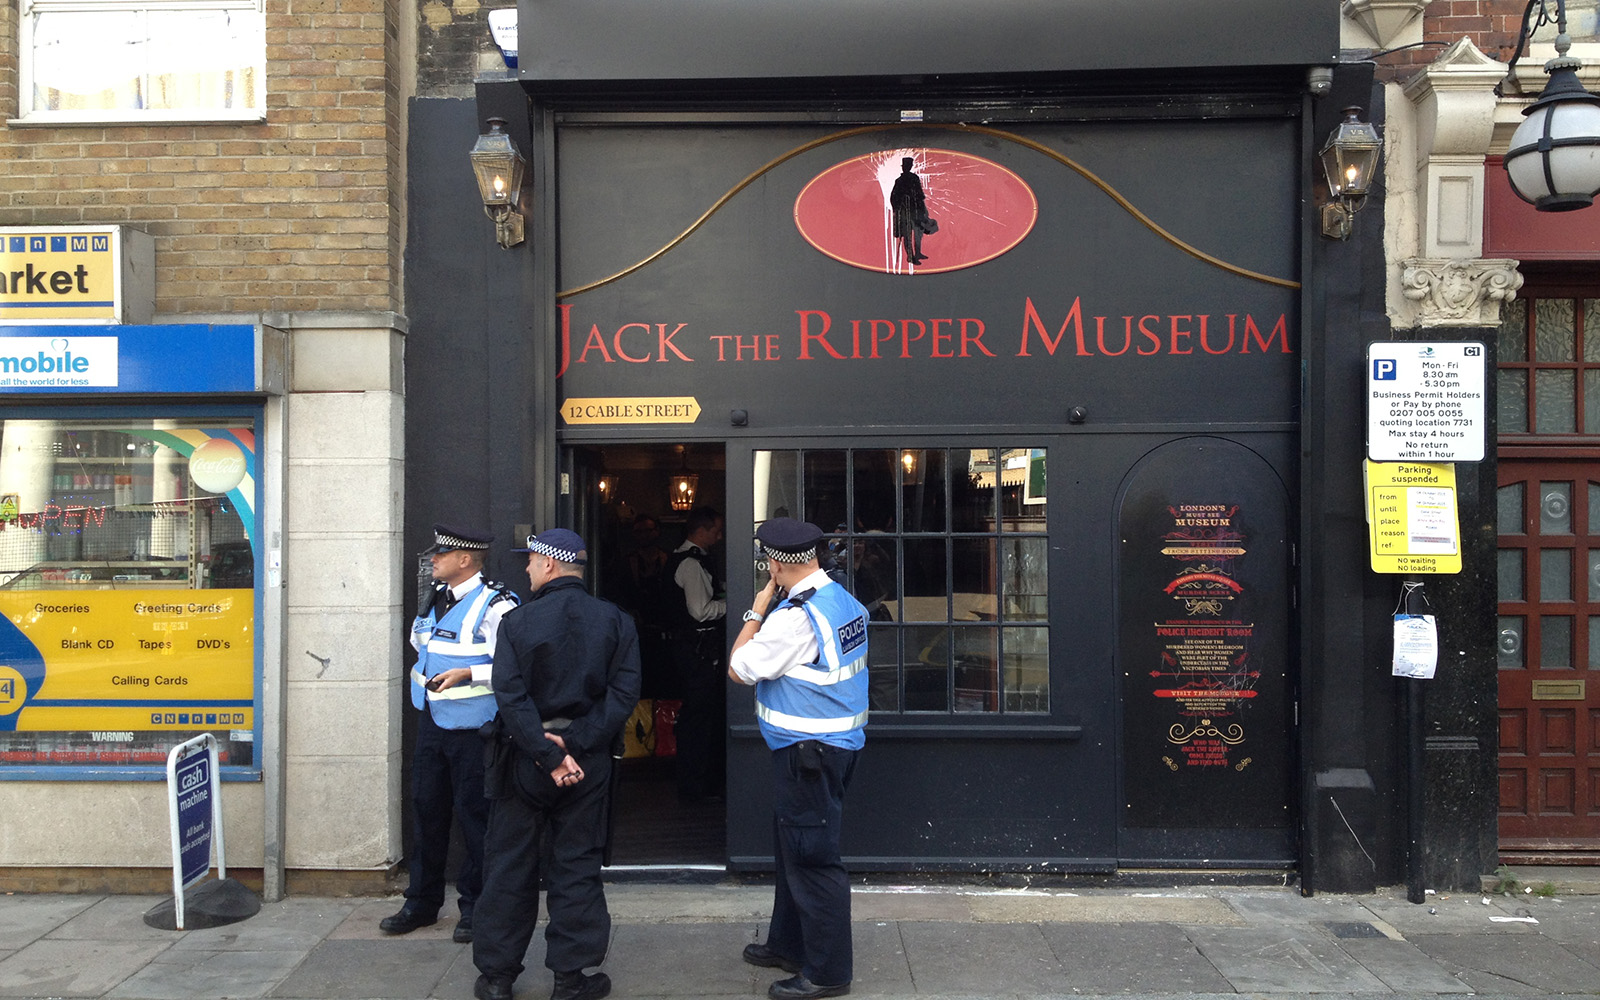 Jack The Ripper Museum 4 October 2015